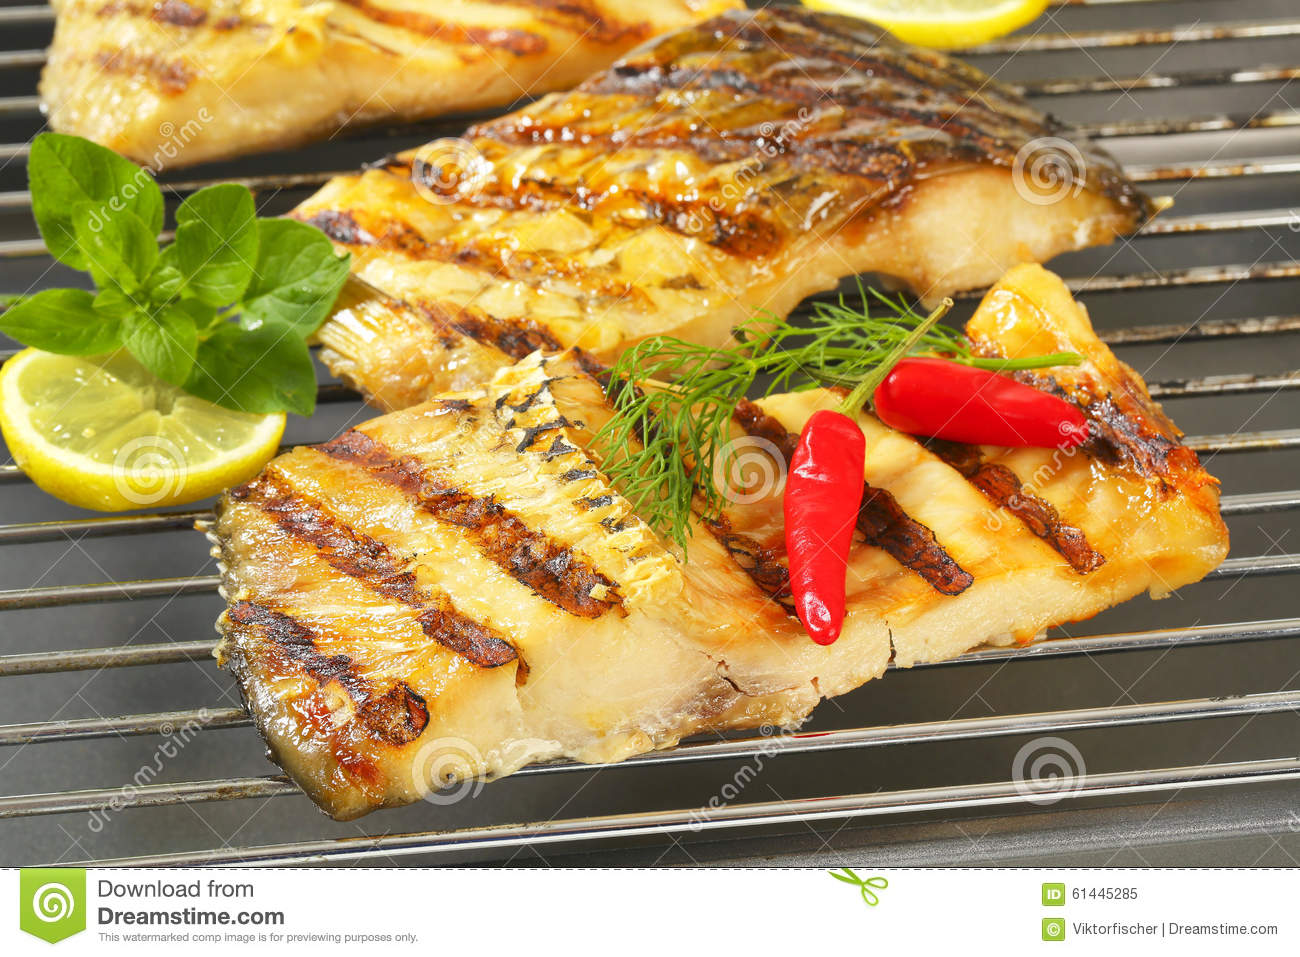 how to barbecue fish fillets in foil